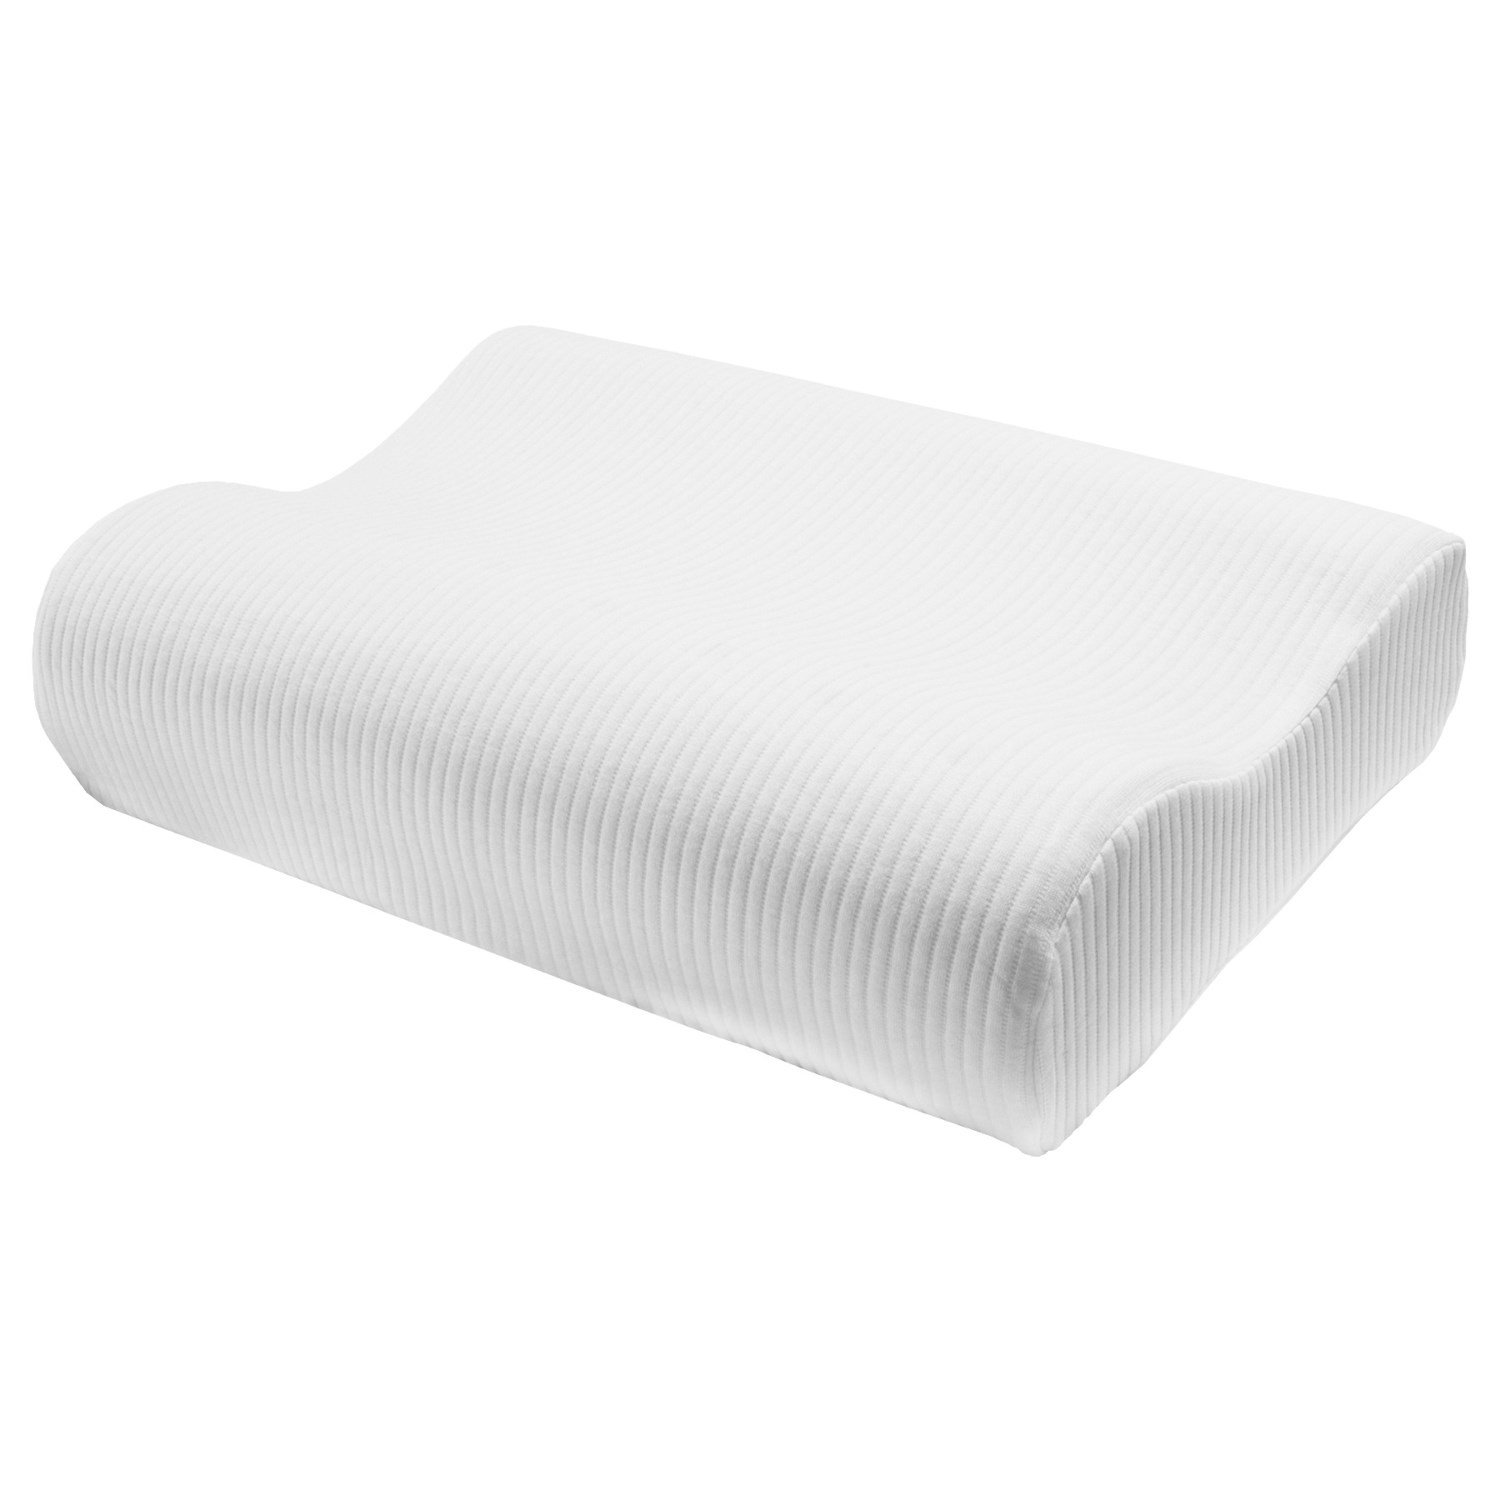 Soft-Tex Extra-Firm Classic Contour Pillow - Standard, Memory Foam ...